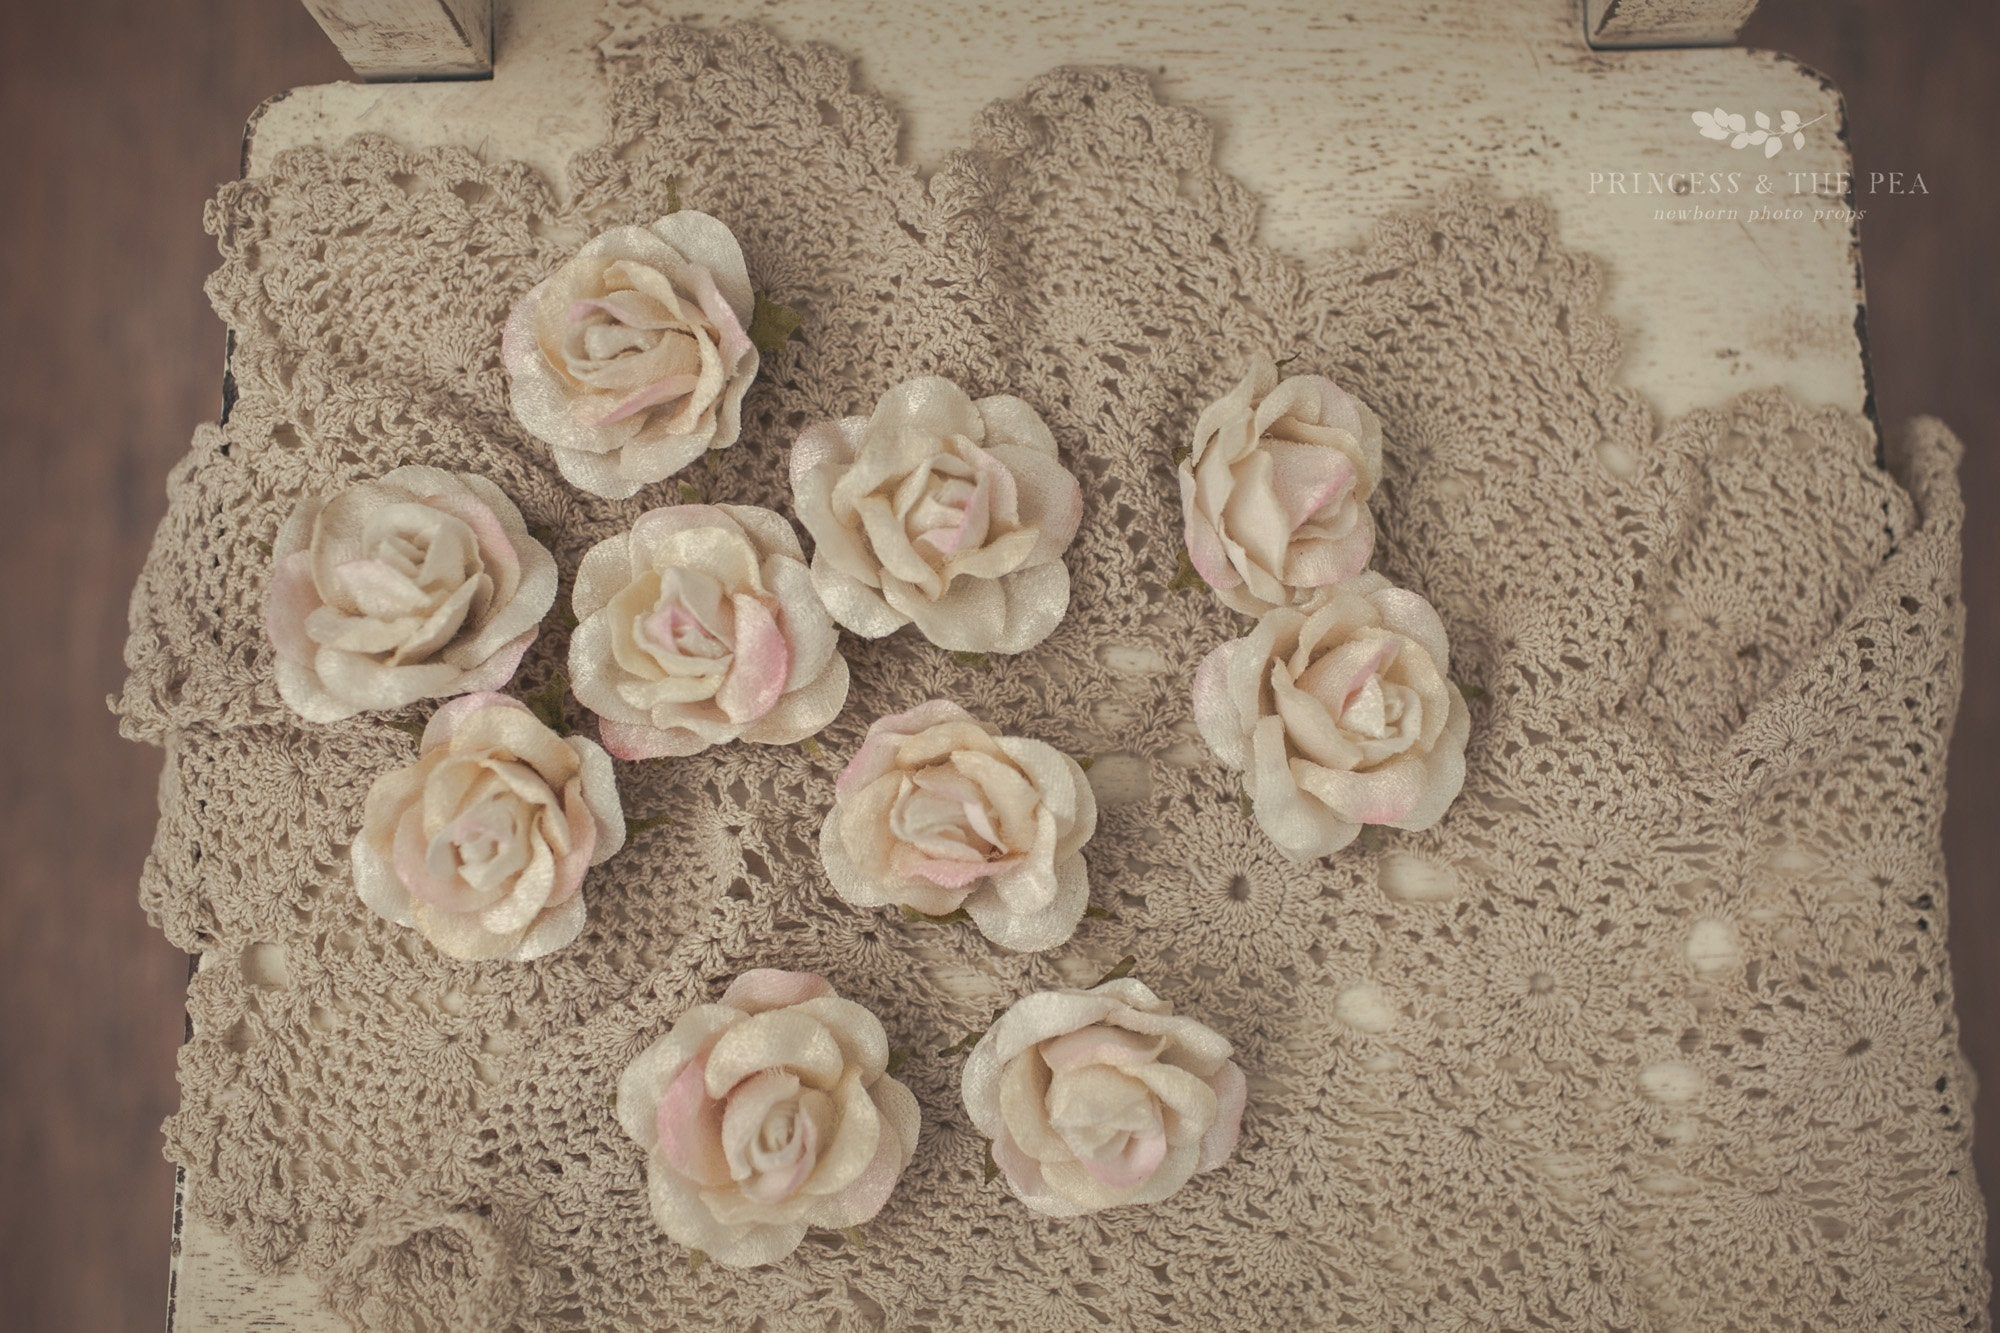 Velvet Roses - Princess & the Pea Props